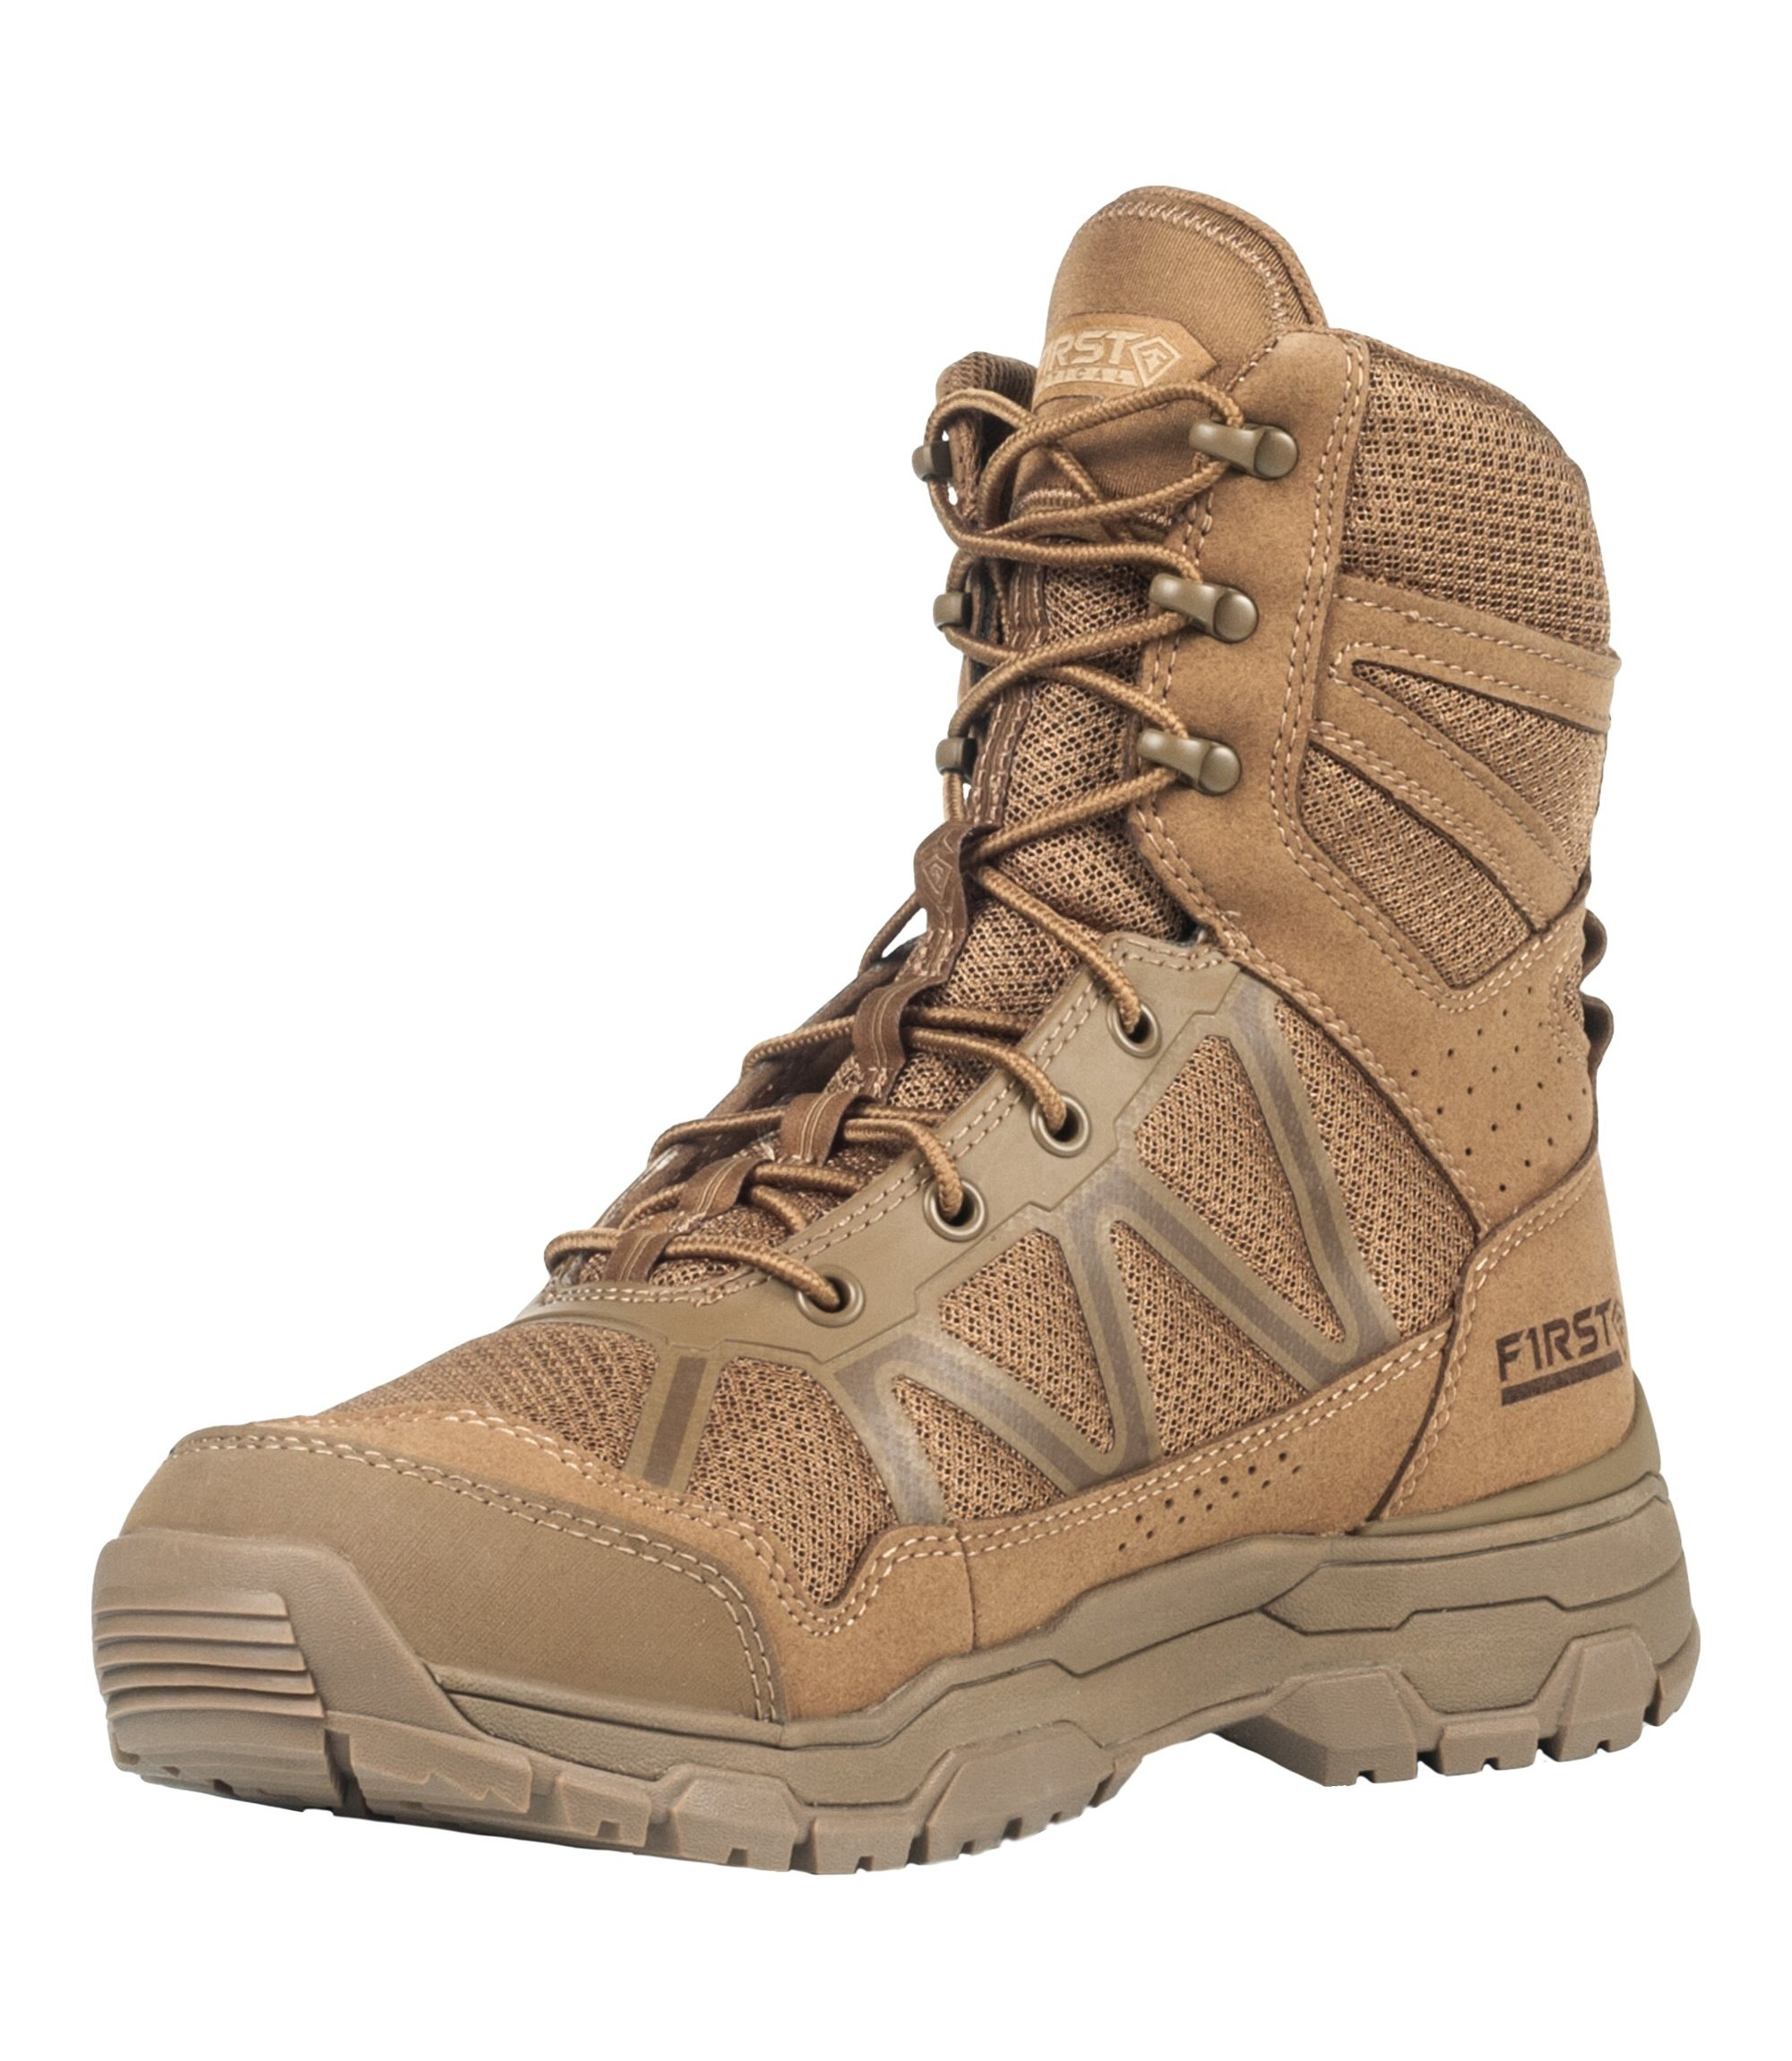 """Image of Buty first tactical m's 7"""" operator boot coyote 165010 - rozmiar (a) 43 (u1t/165010 060 9 - 43)"""